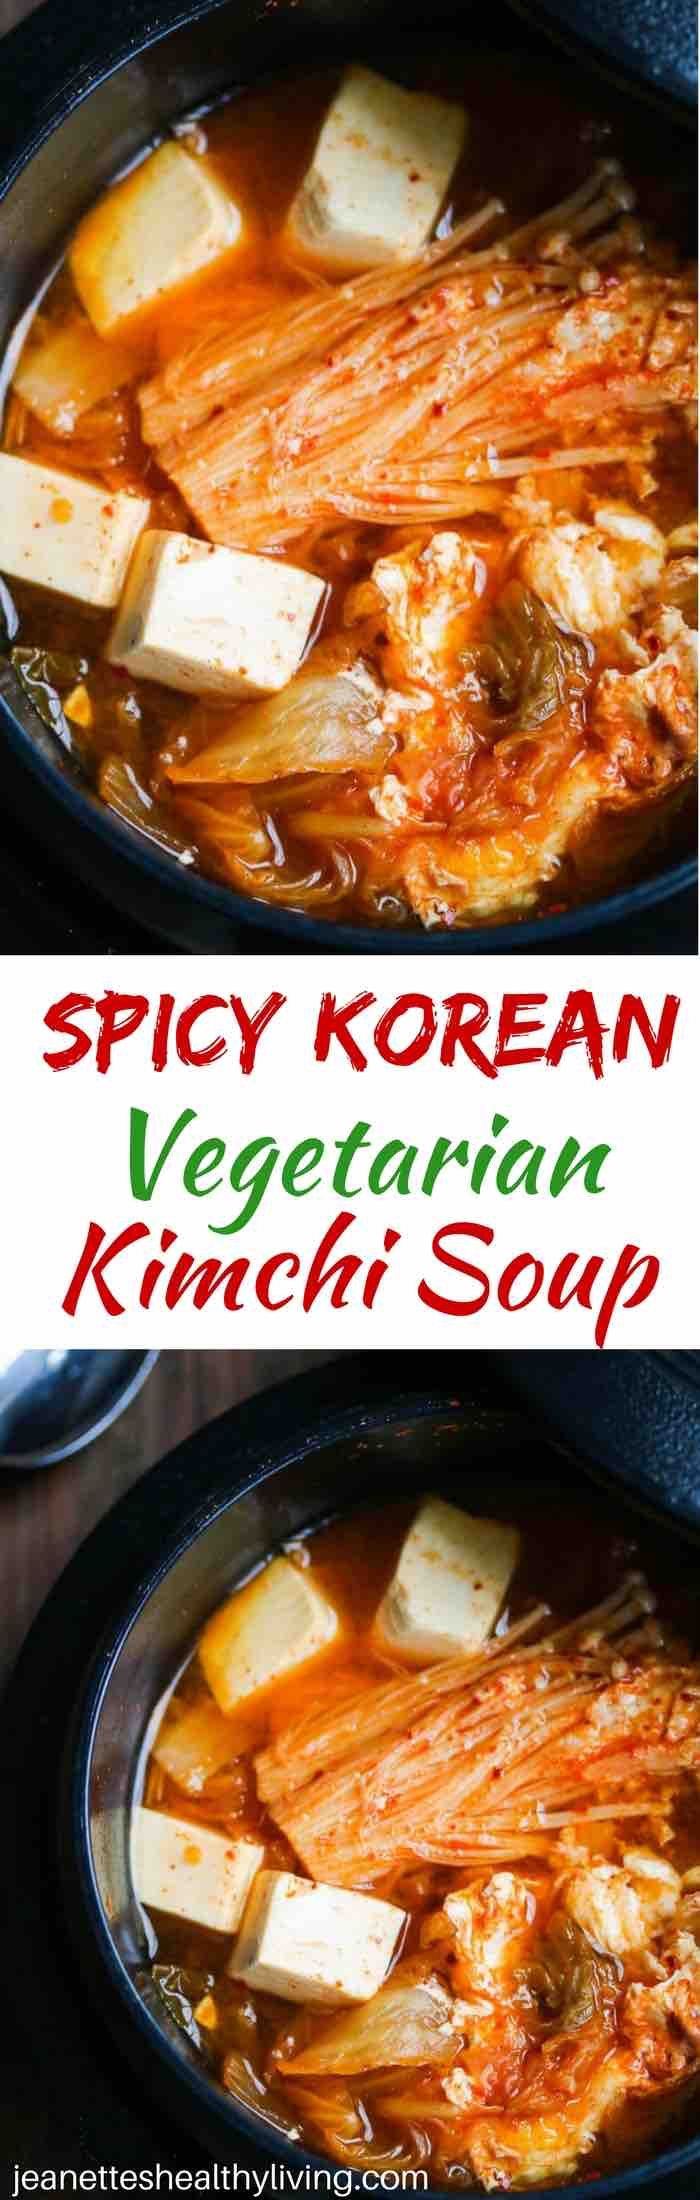 Spicy Kimchi Tofu Mushroom Egg Soup - great way to warm up your belly on a cold winter day. Korean kimchi and gochujang spice up this vegetarian soup, and tofu and egg provide the proteins.